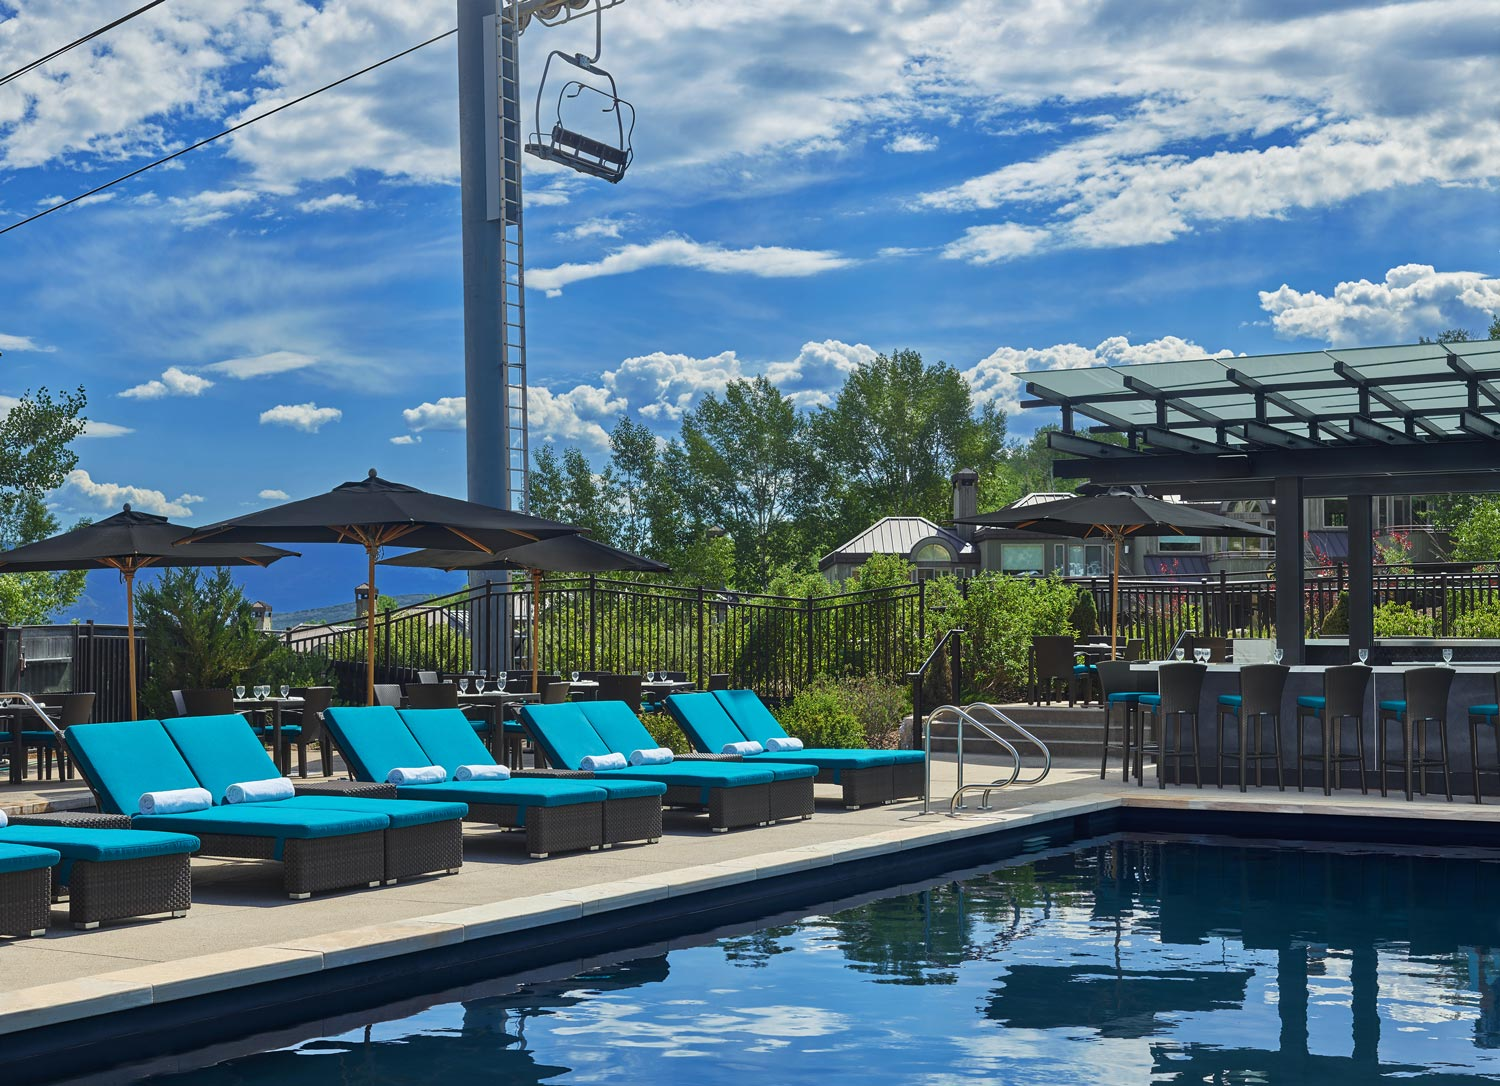 Viceroy pool in Snowmass Base Village